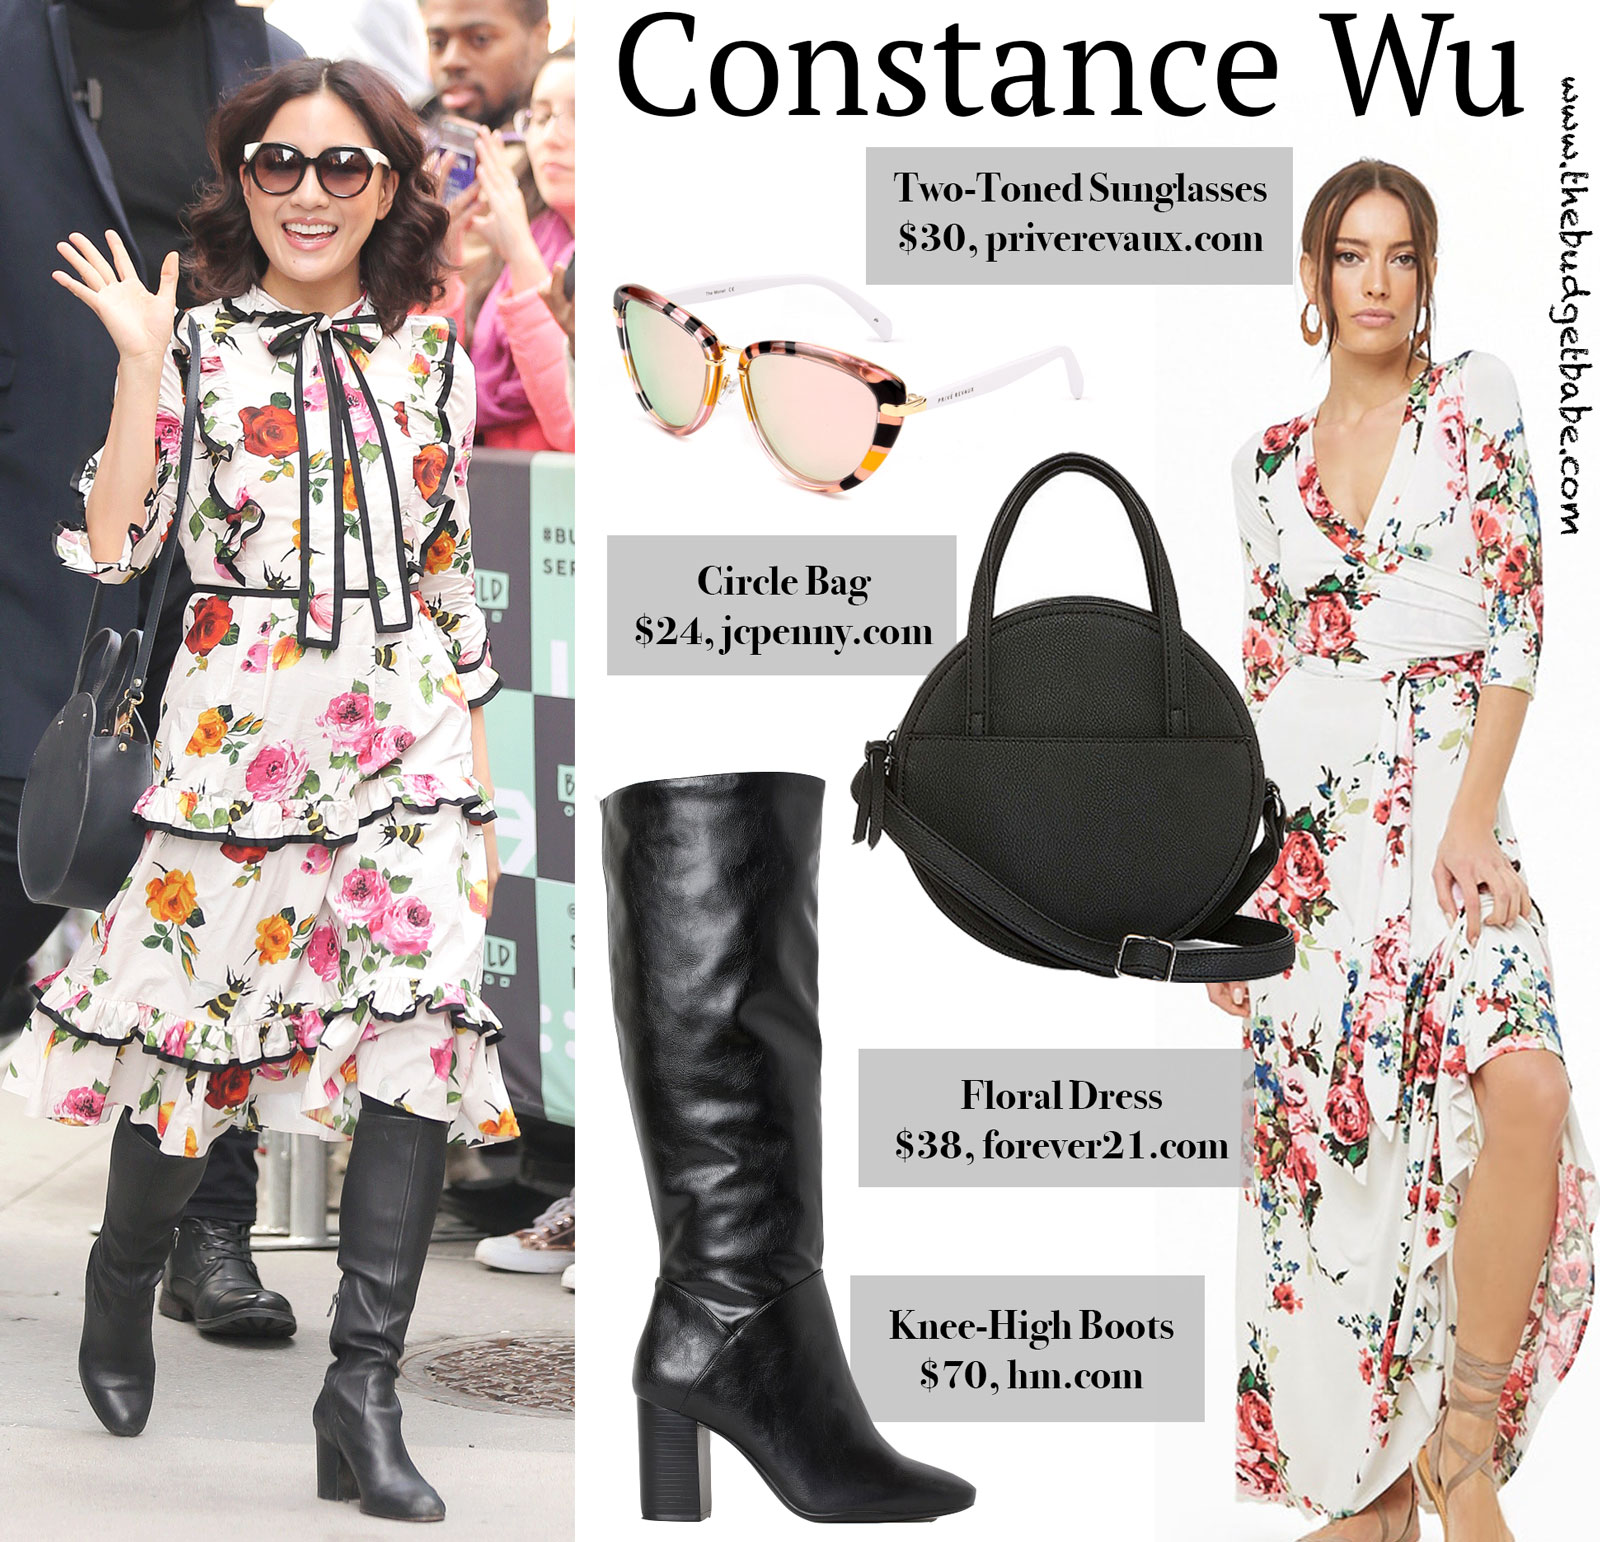 Constance Wu Floral Gucci Dress Look for Less